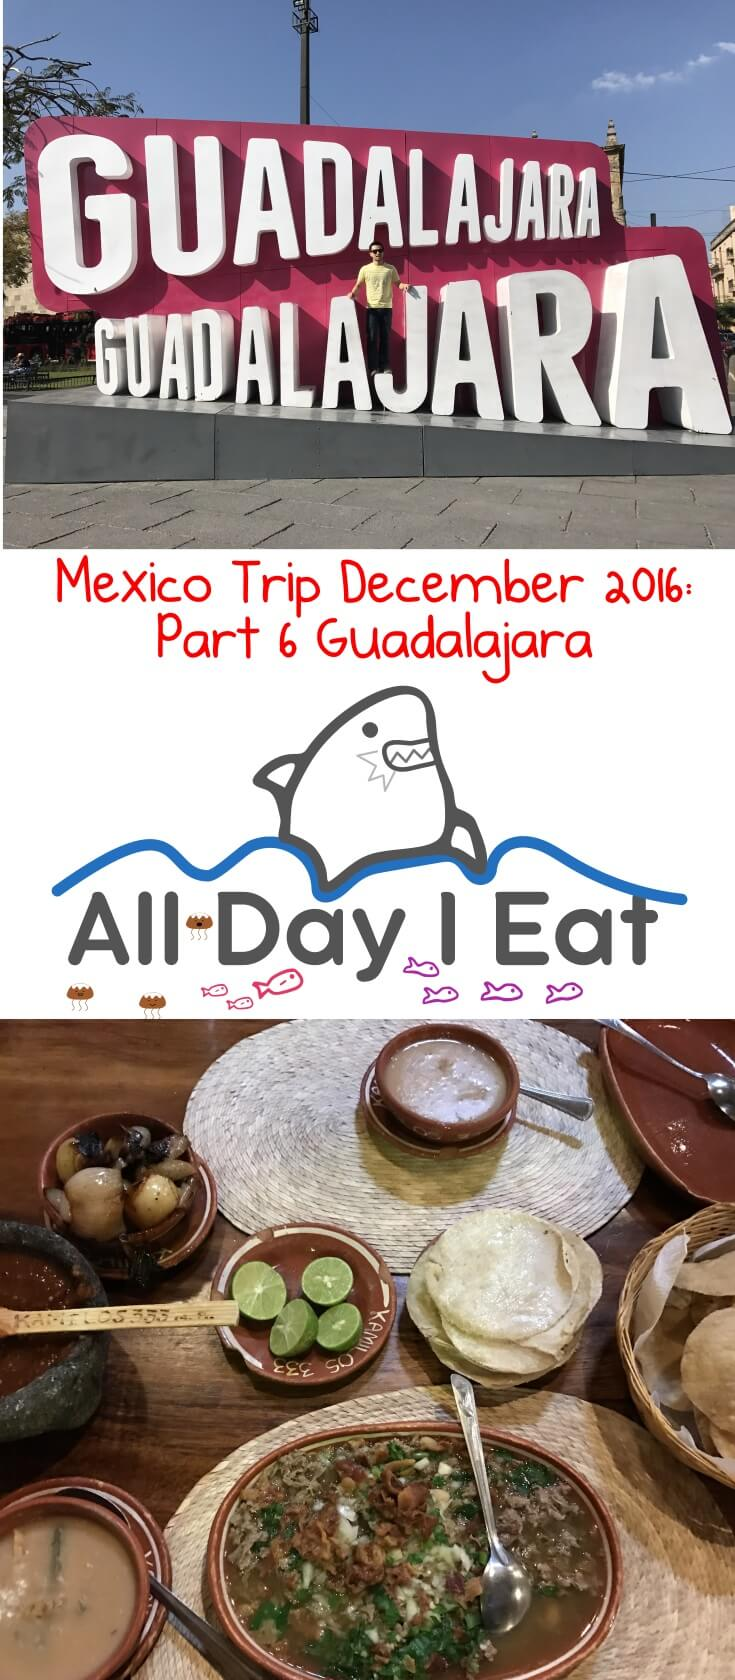 Mexico Trip December 2016: Part 6 Guadalajara. A city famous for delicious food and art! Come see what to do and where to eat some of the regional specialties! | www.alldayieat.com